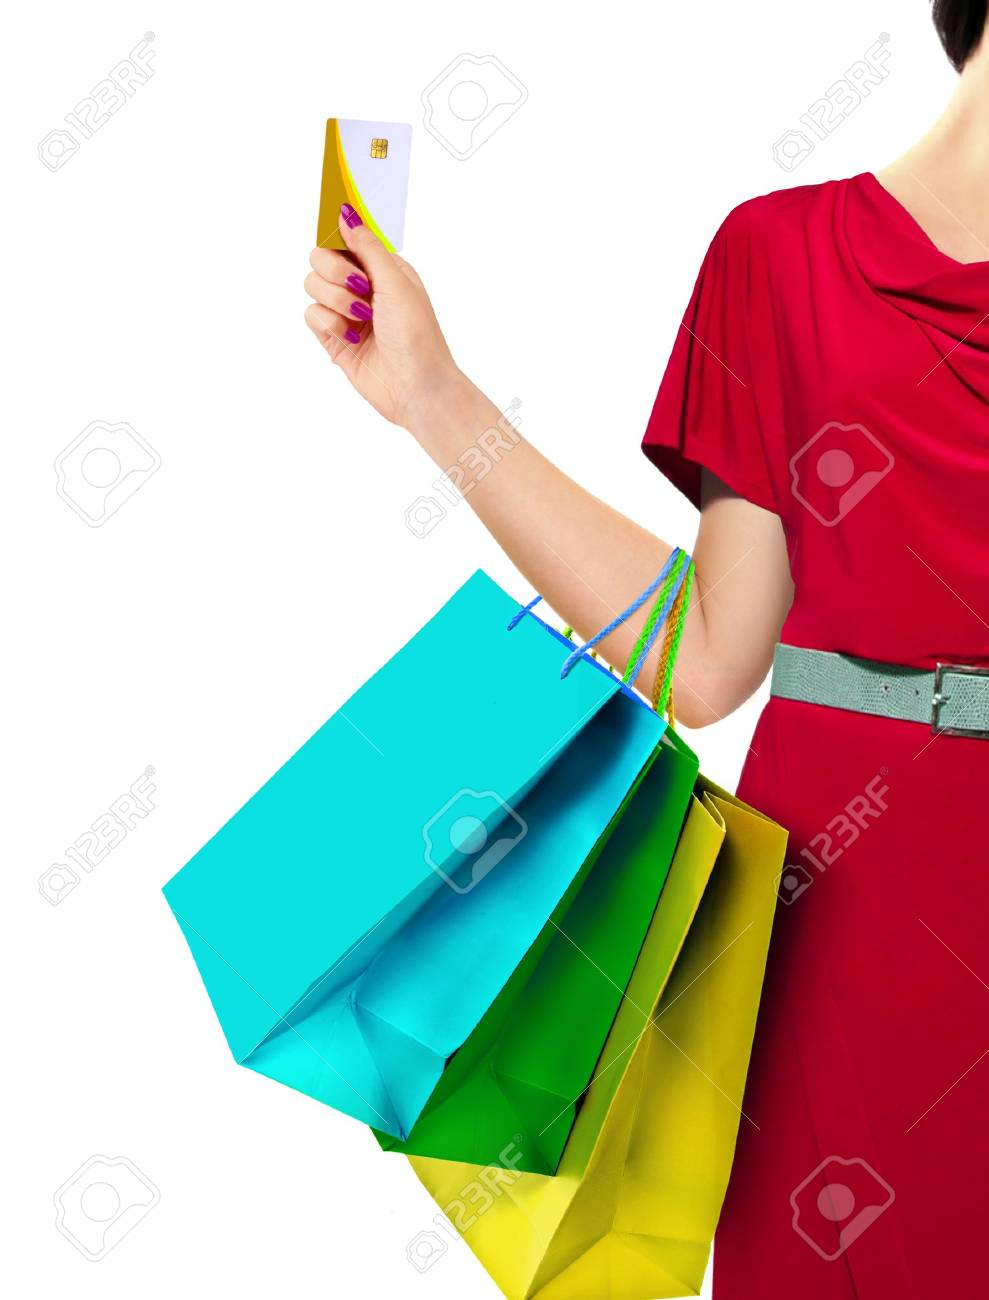 Women with Shopping Bags and Credit Card - 32643597